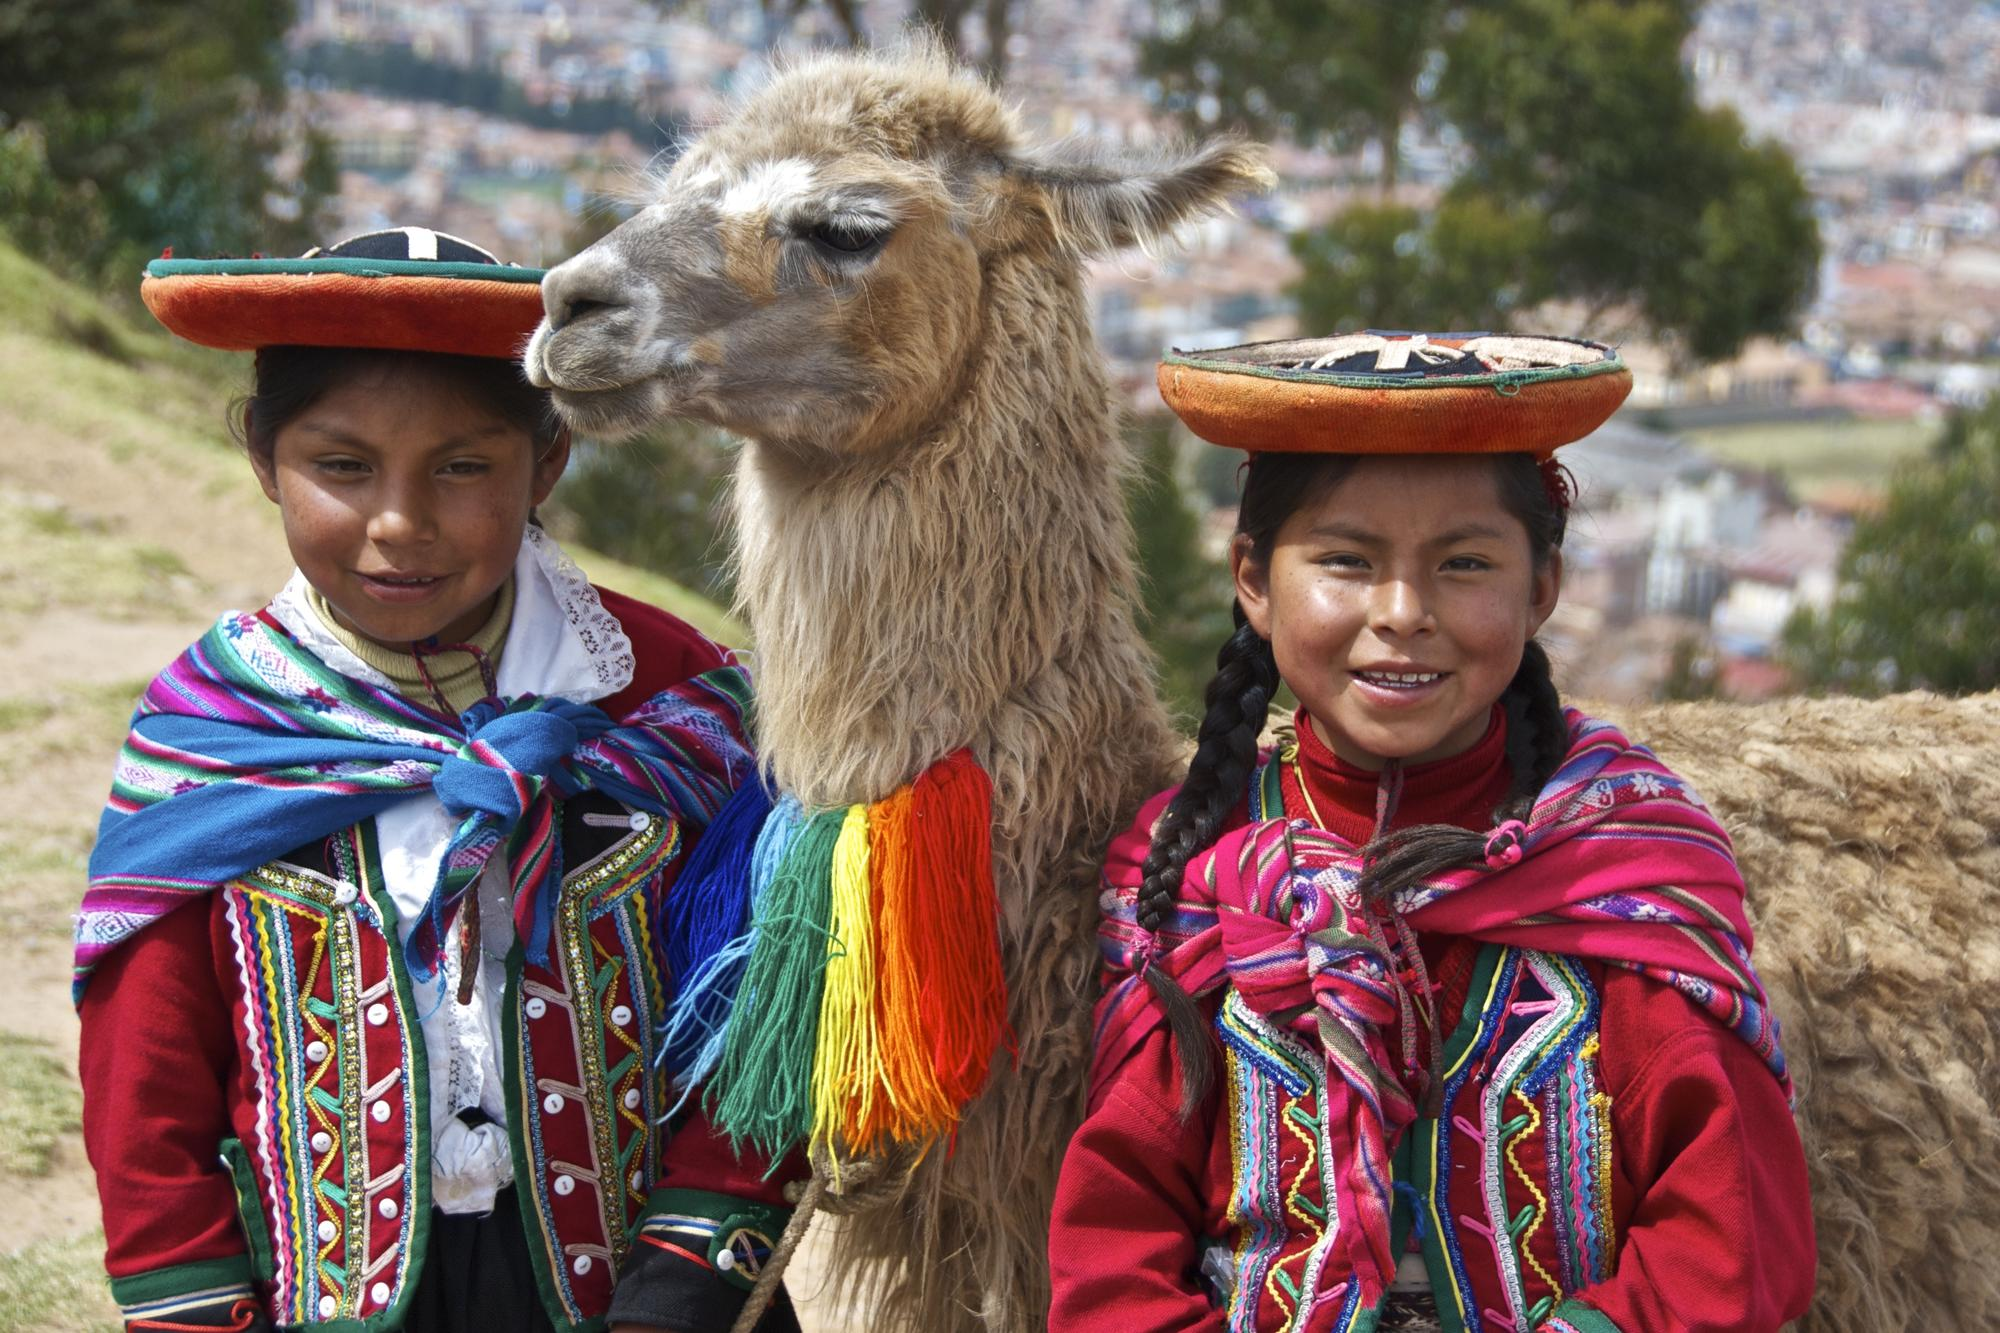 a description of the incas was a group of people who lived in south america during the period The inca empire was a vast empire that flourished in the andean region of south america from the early 15th century ad up until its conquest by the spanish in the 1530s even after the conquest.